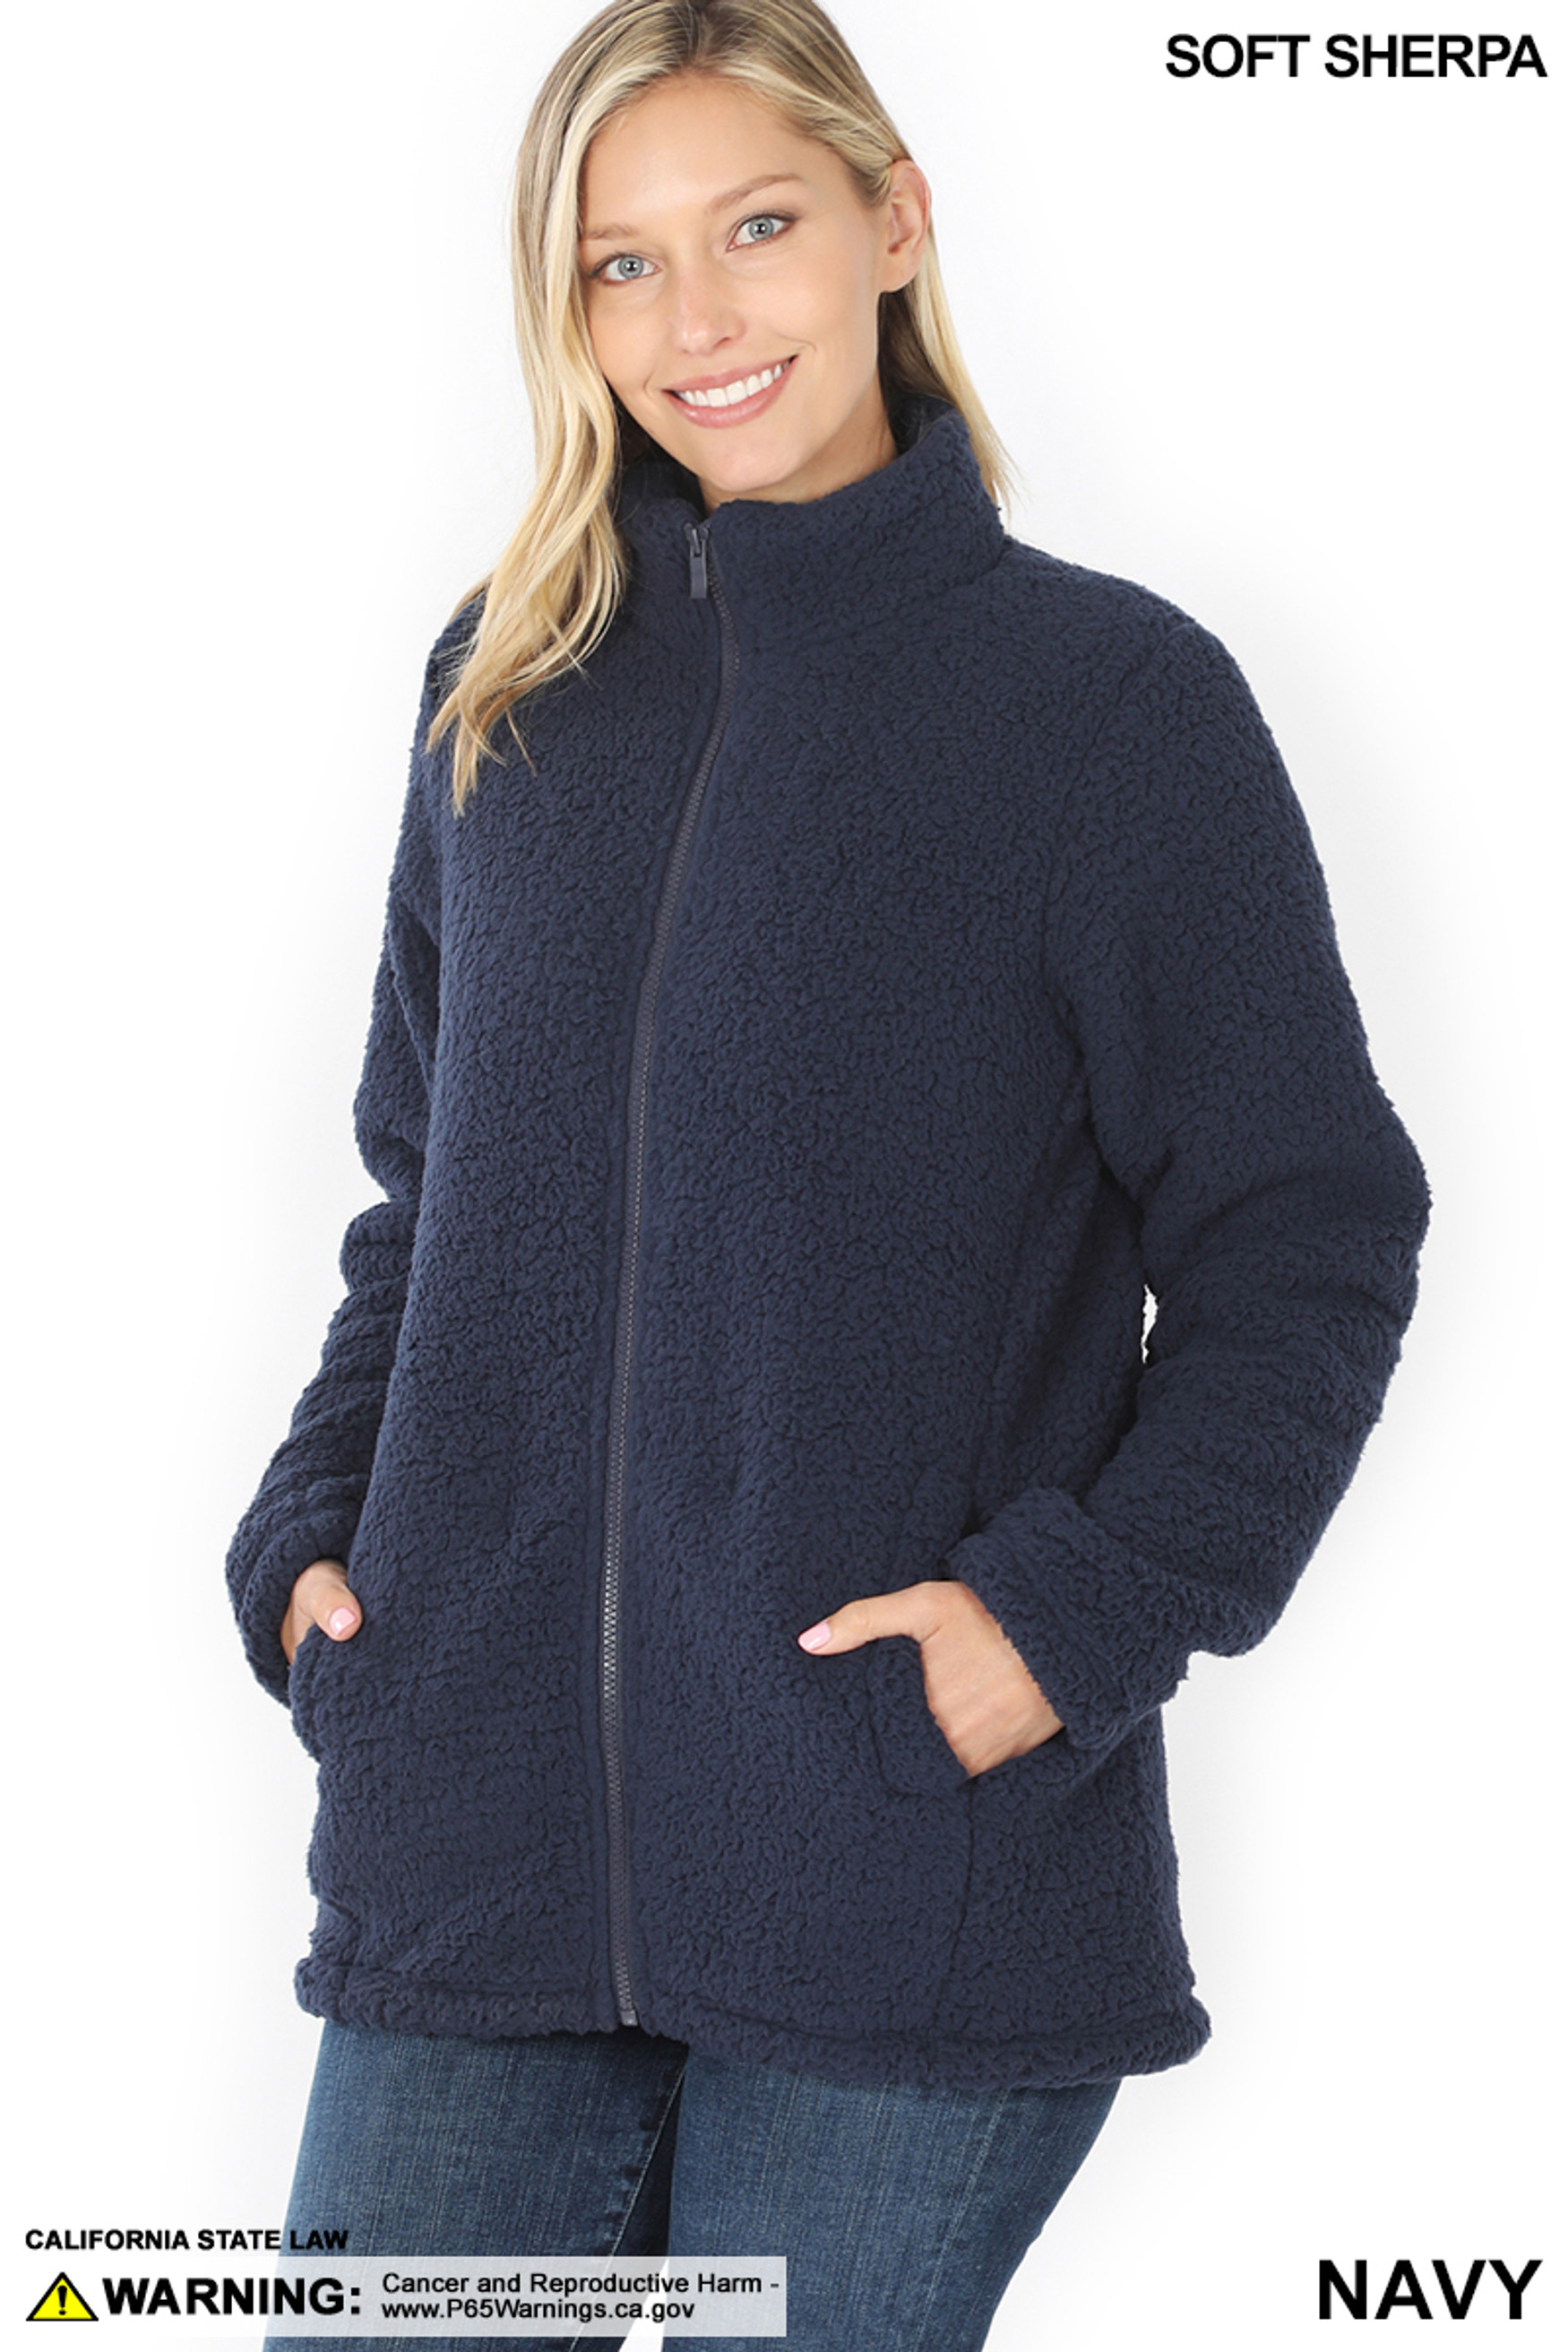 45 degree image of Navy Sherpa Zip Up Jacket with Side Pockets